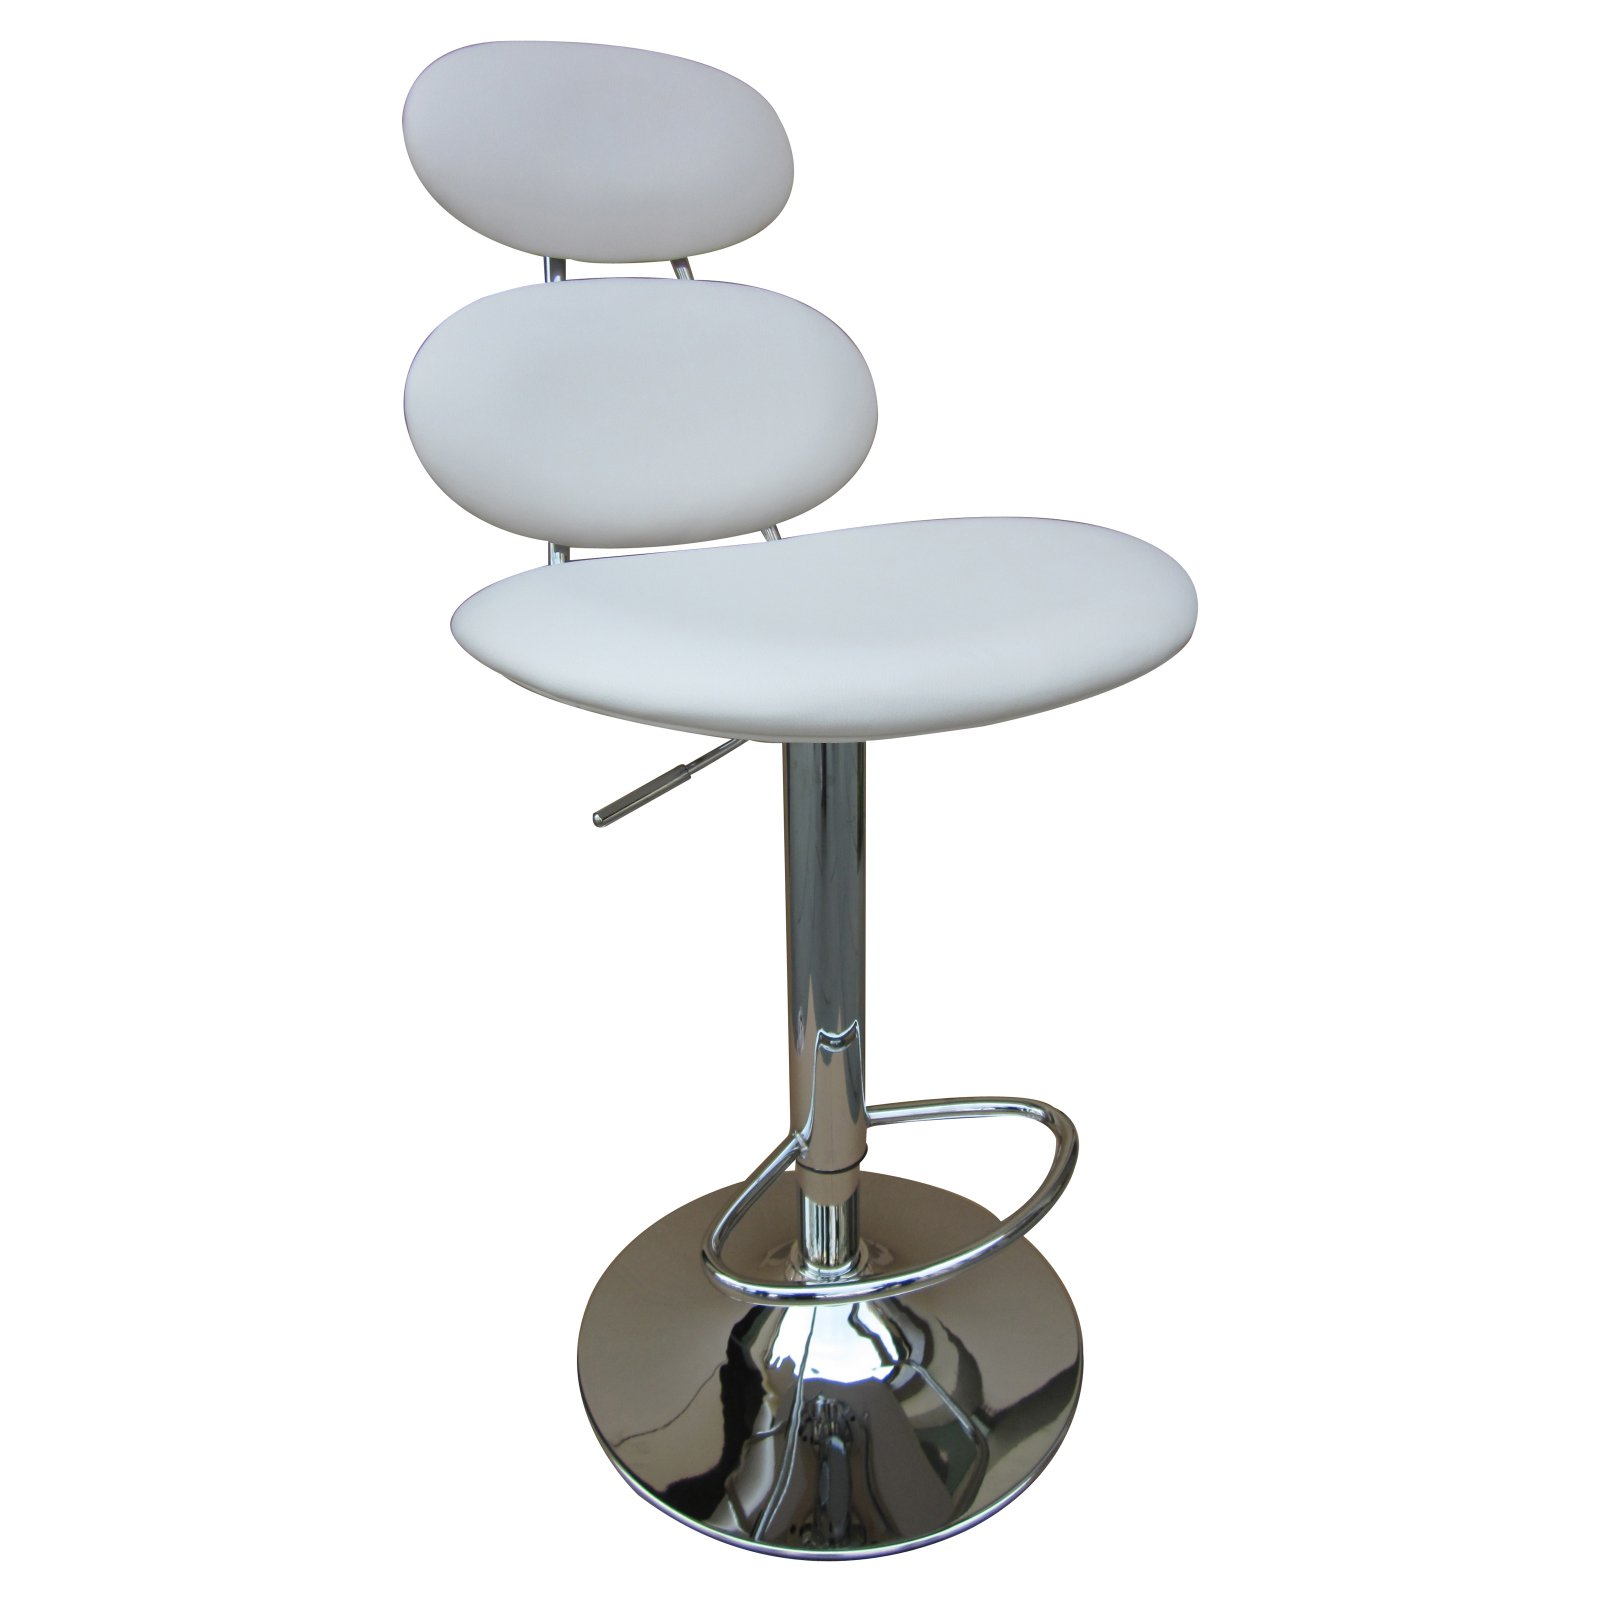 Creative Images International 32 In Ellipse Bar Stool